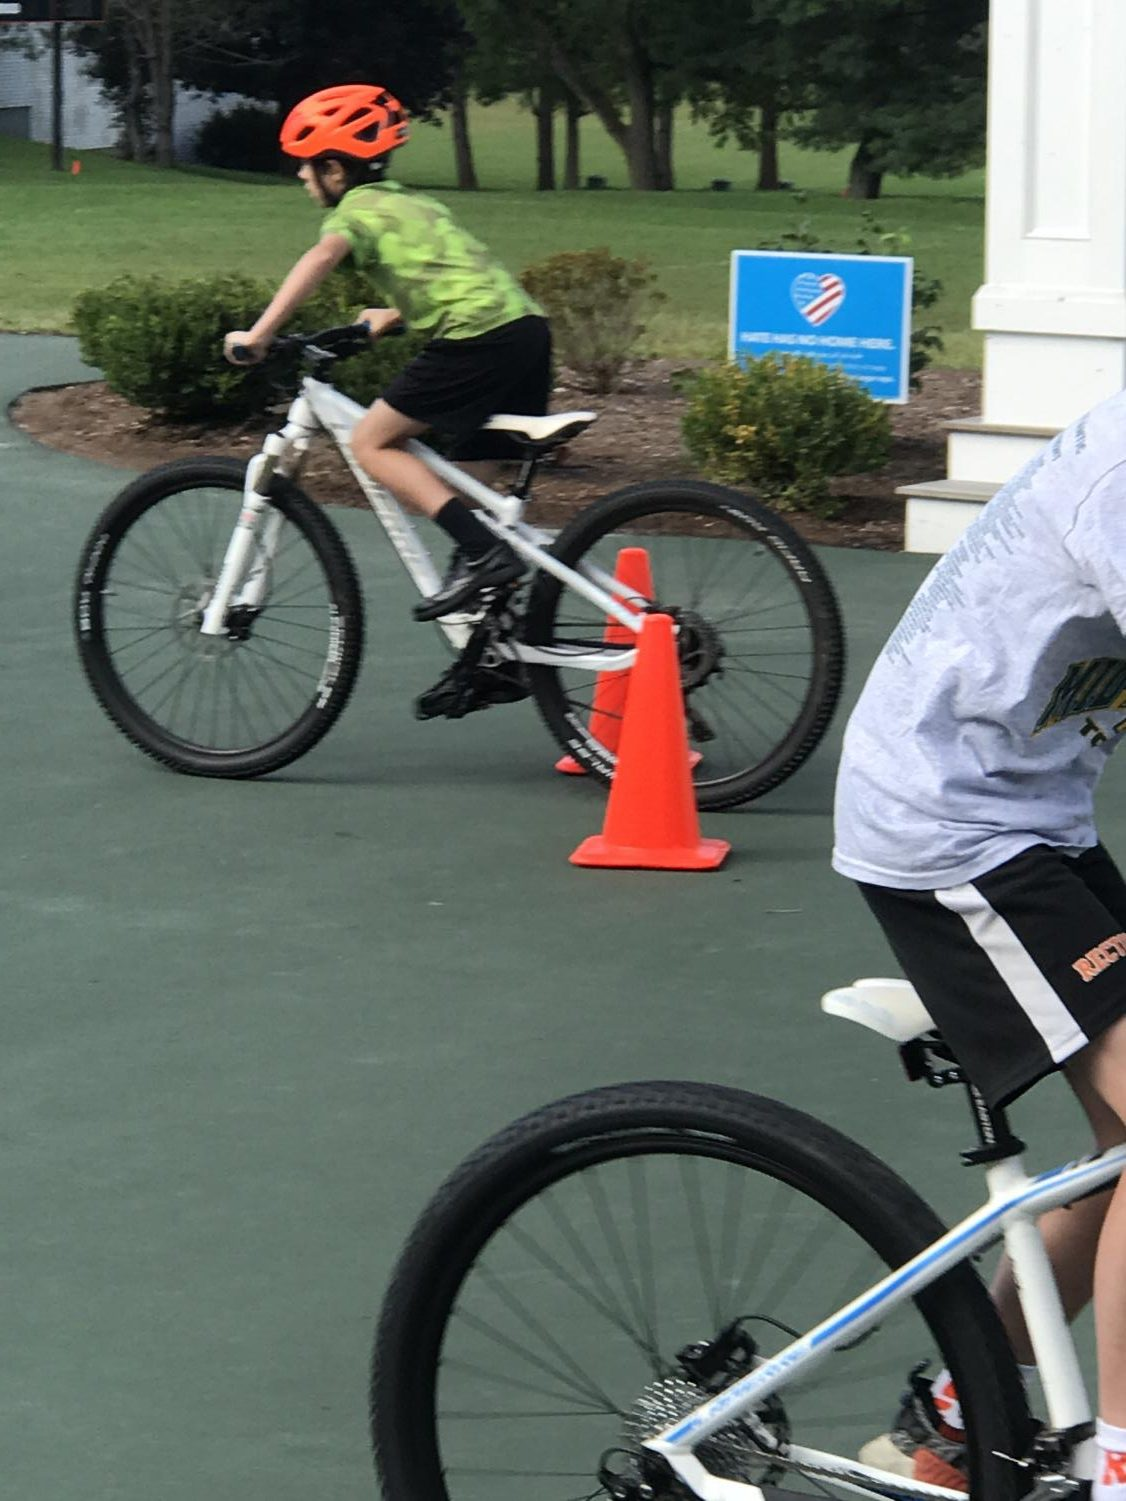 Students practice their mountain-biking skills on an obstacle course created to prepare them for riding on the trails. (Photos taken by Mrs. Walsh of Rectory's Communications  Dept.)